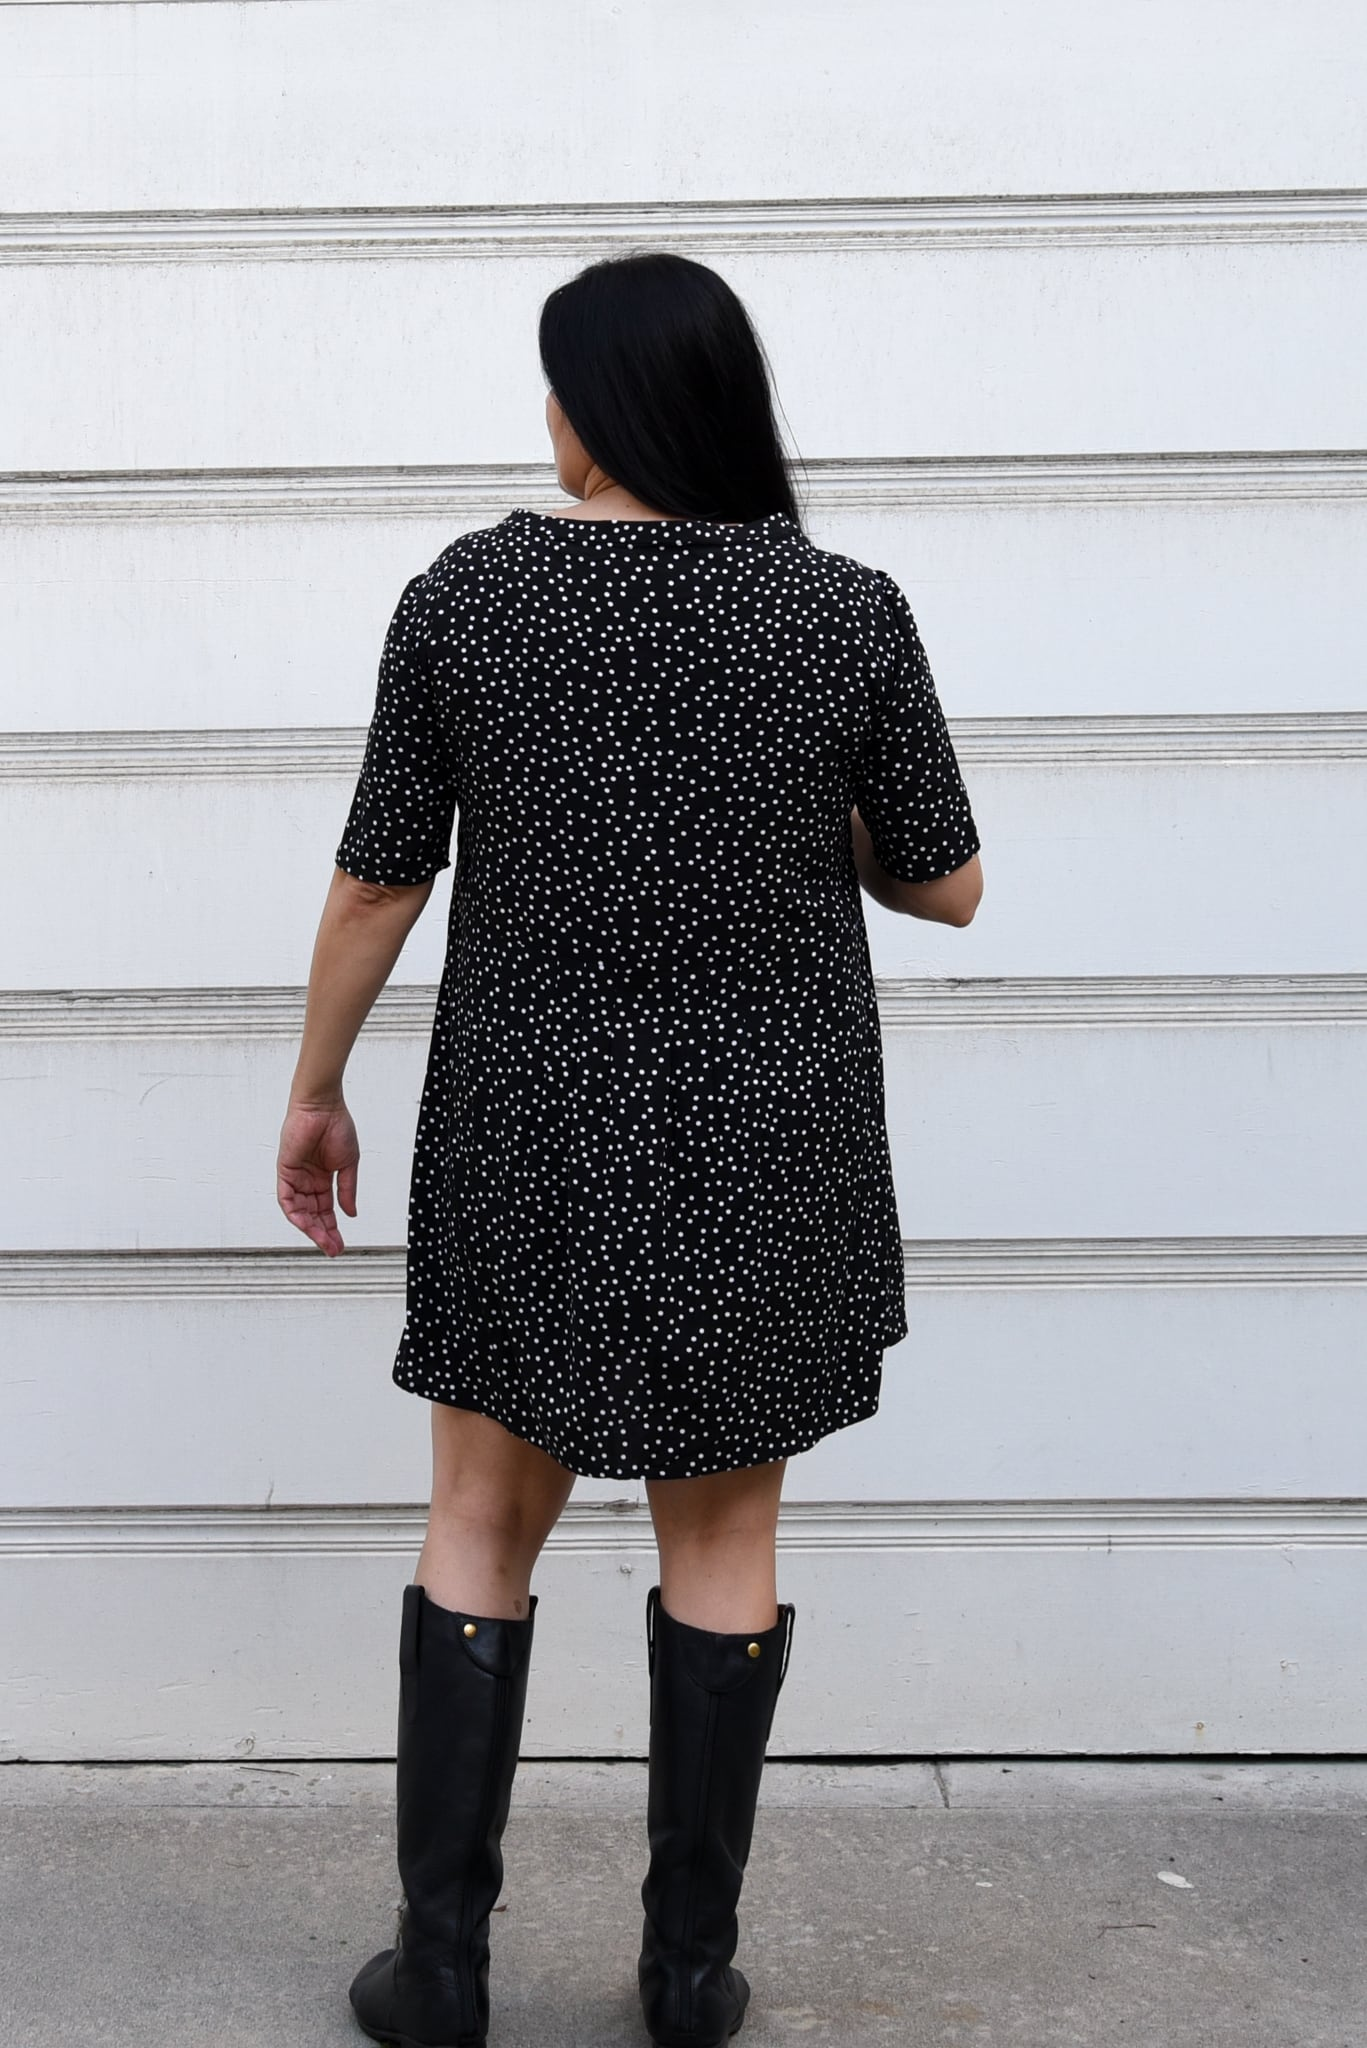 Image of woman with her back to the camera standing in front of a white background wearing a polka dotted black and white mini dress.